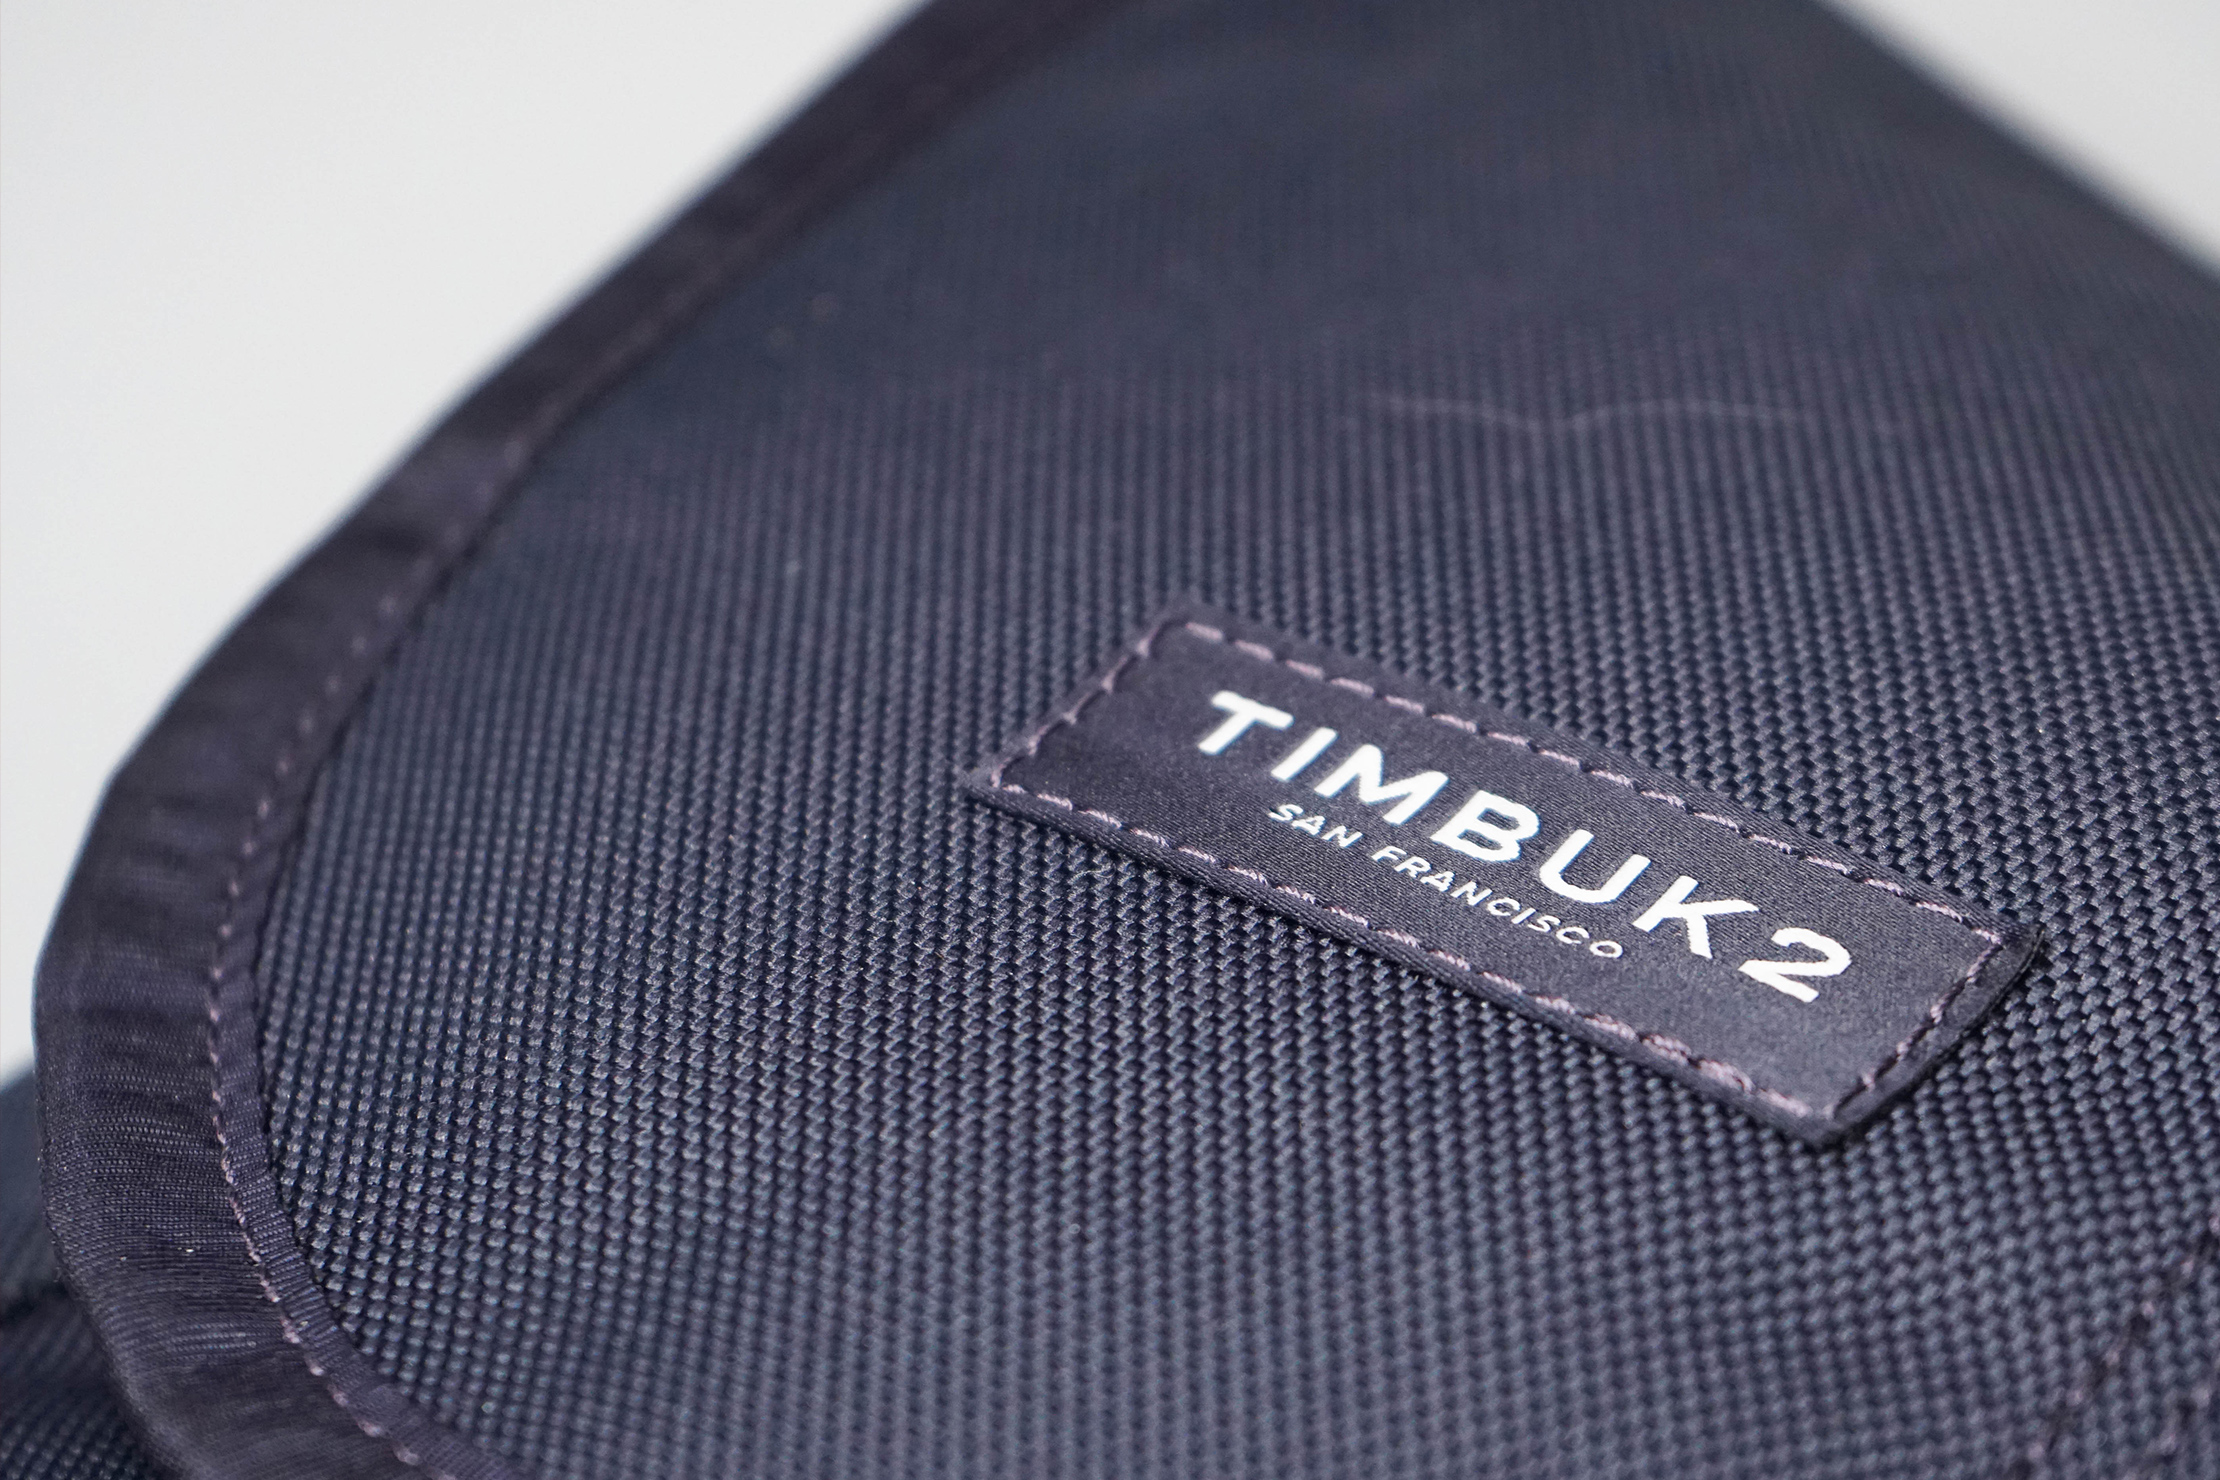 Timbuk2 Classic Messenger Bag Material and Logo